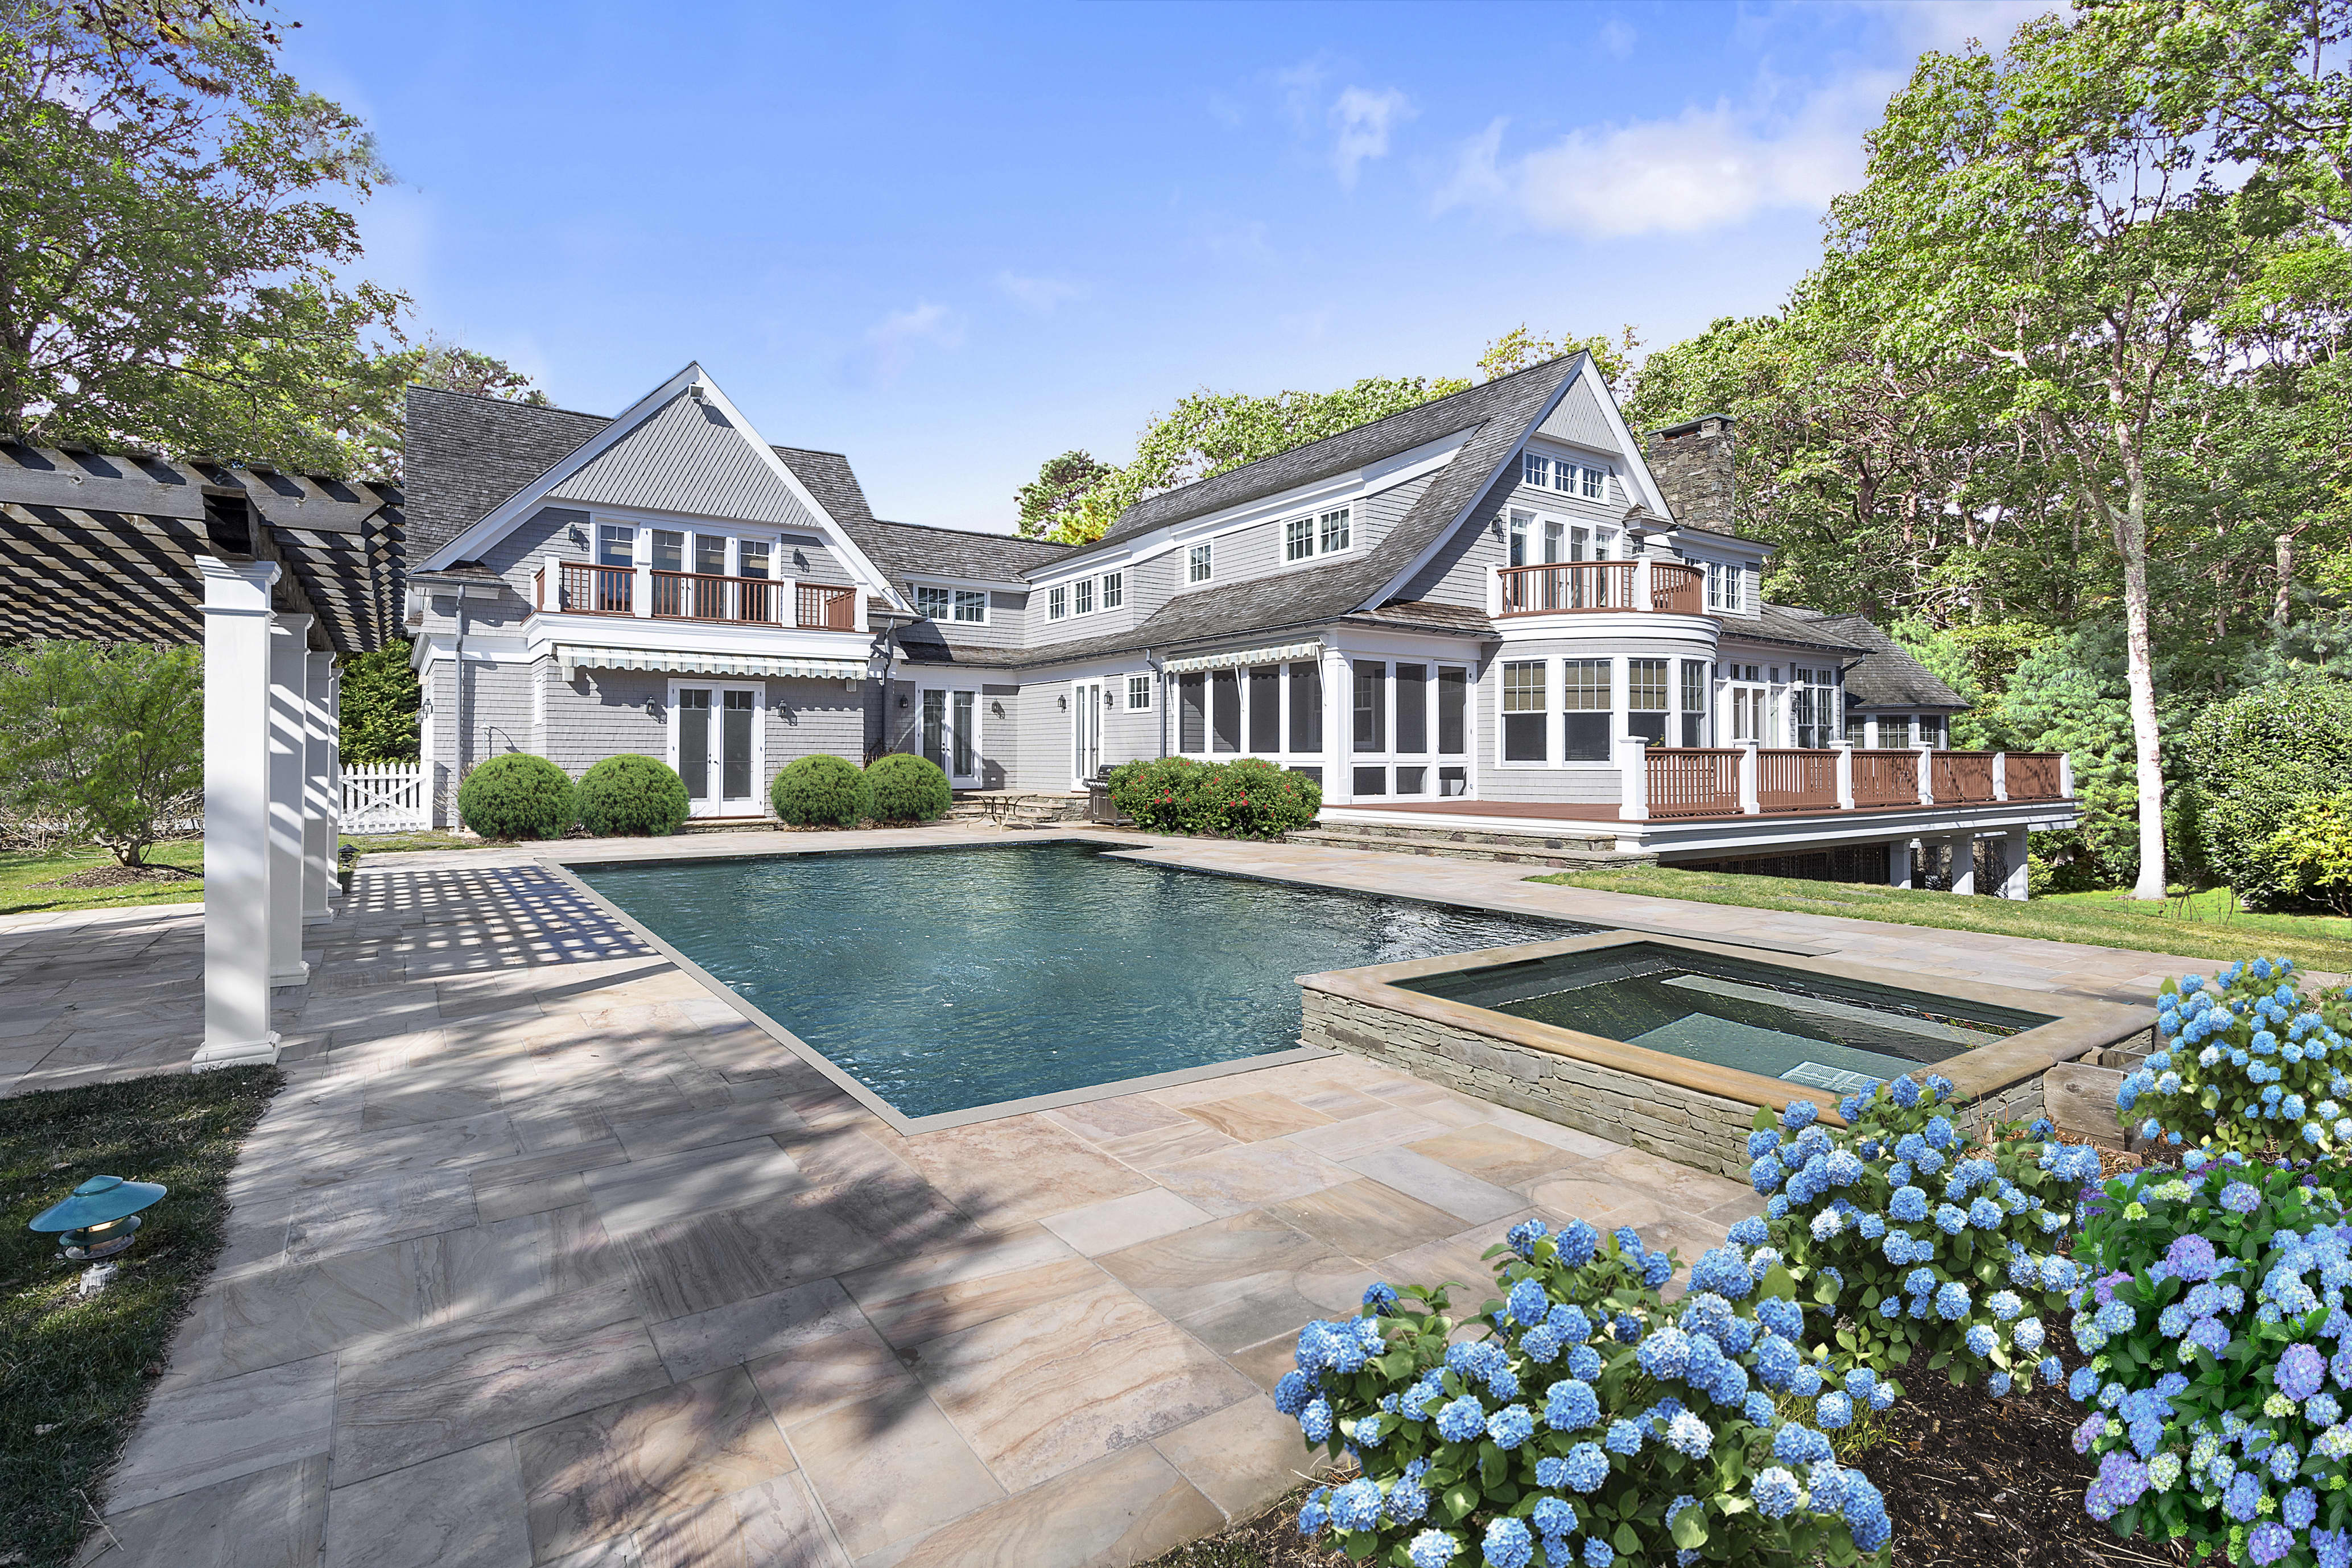 Donald Trump Jr. bought this $4.4 million mansion in the Hamptons — take a look inside